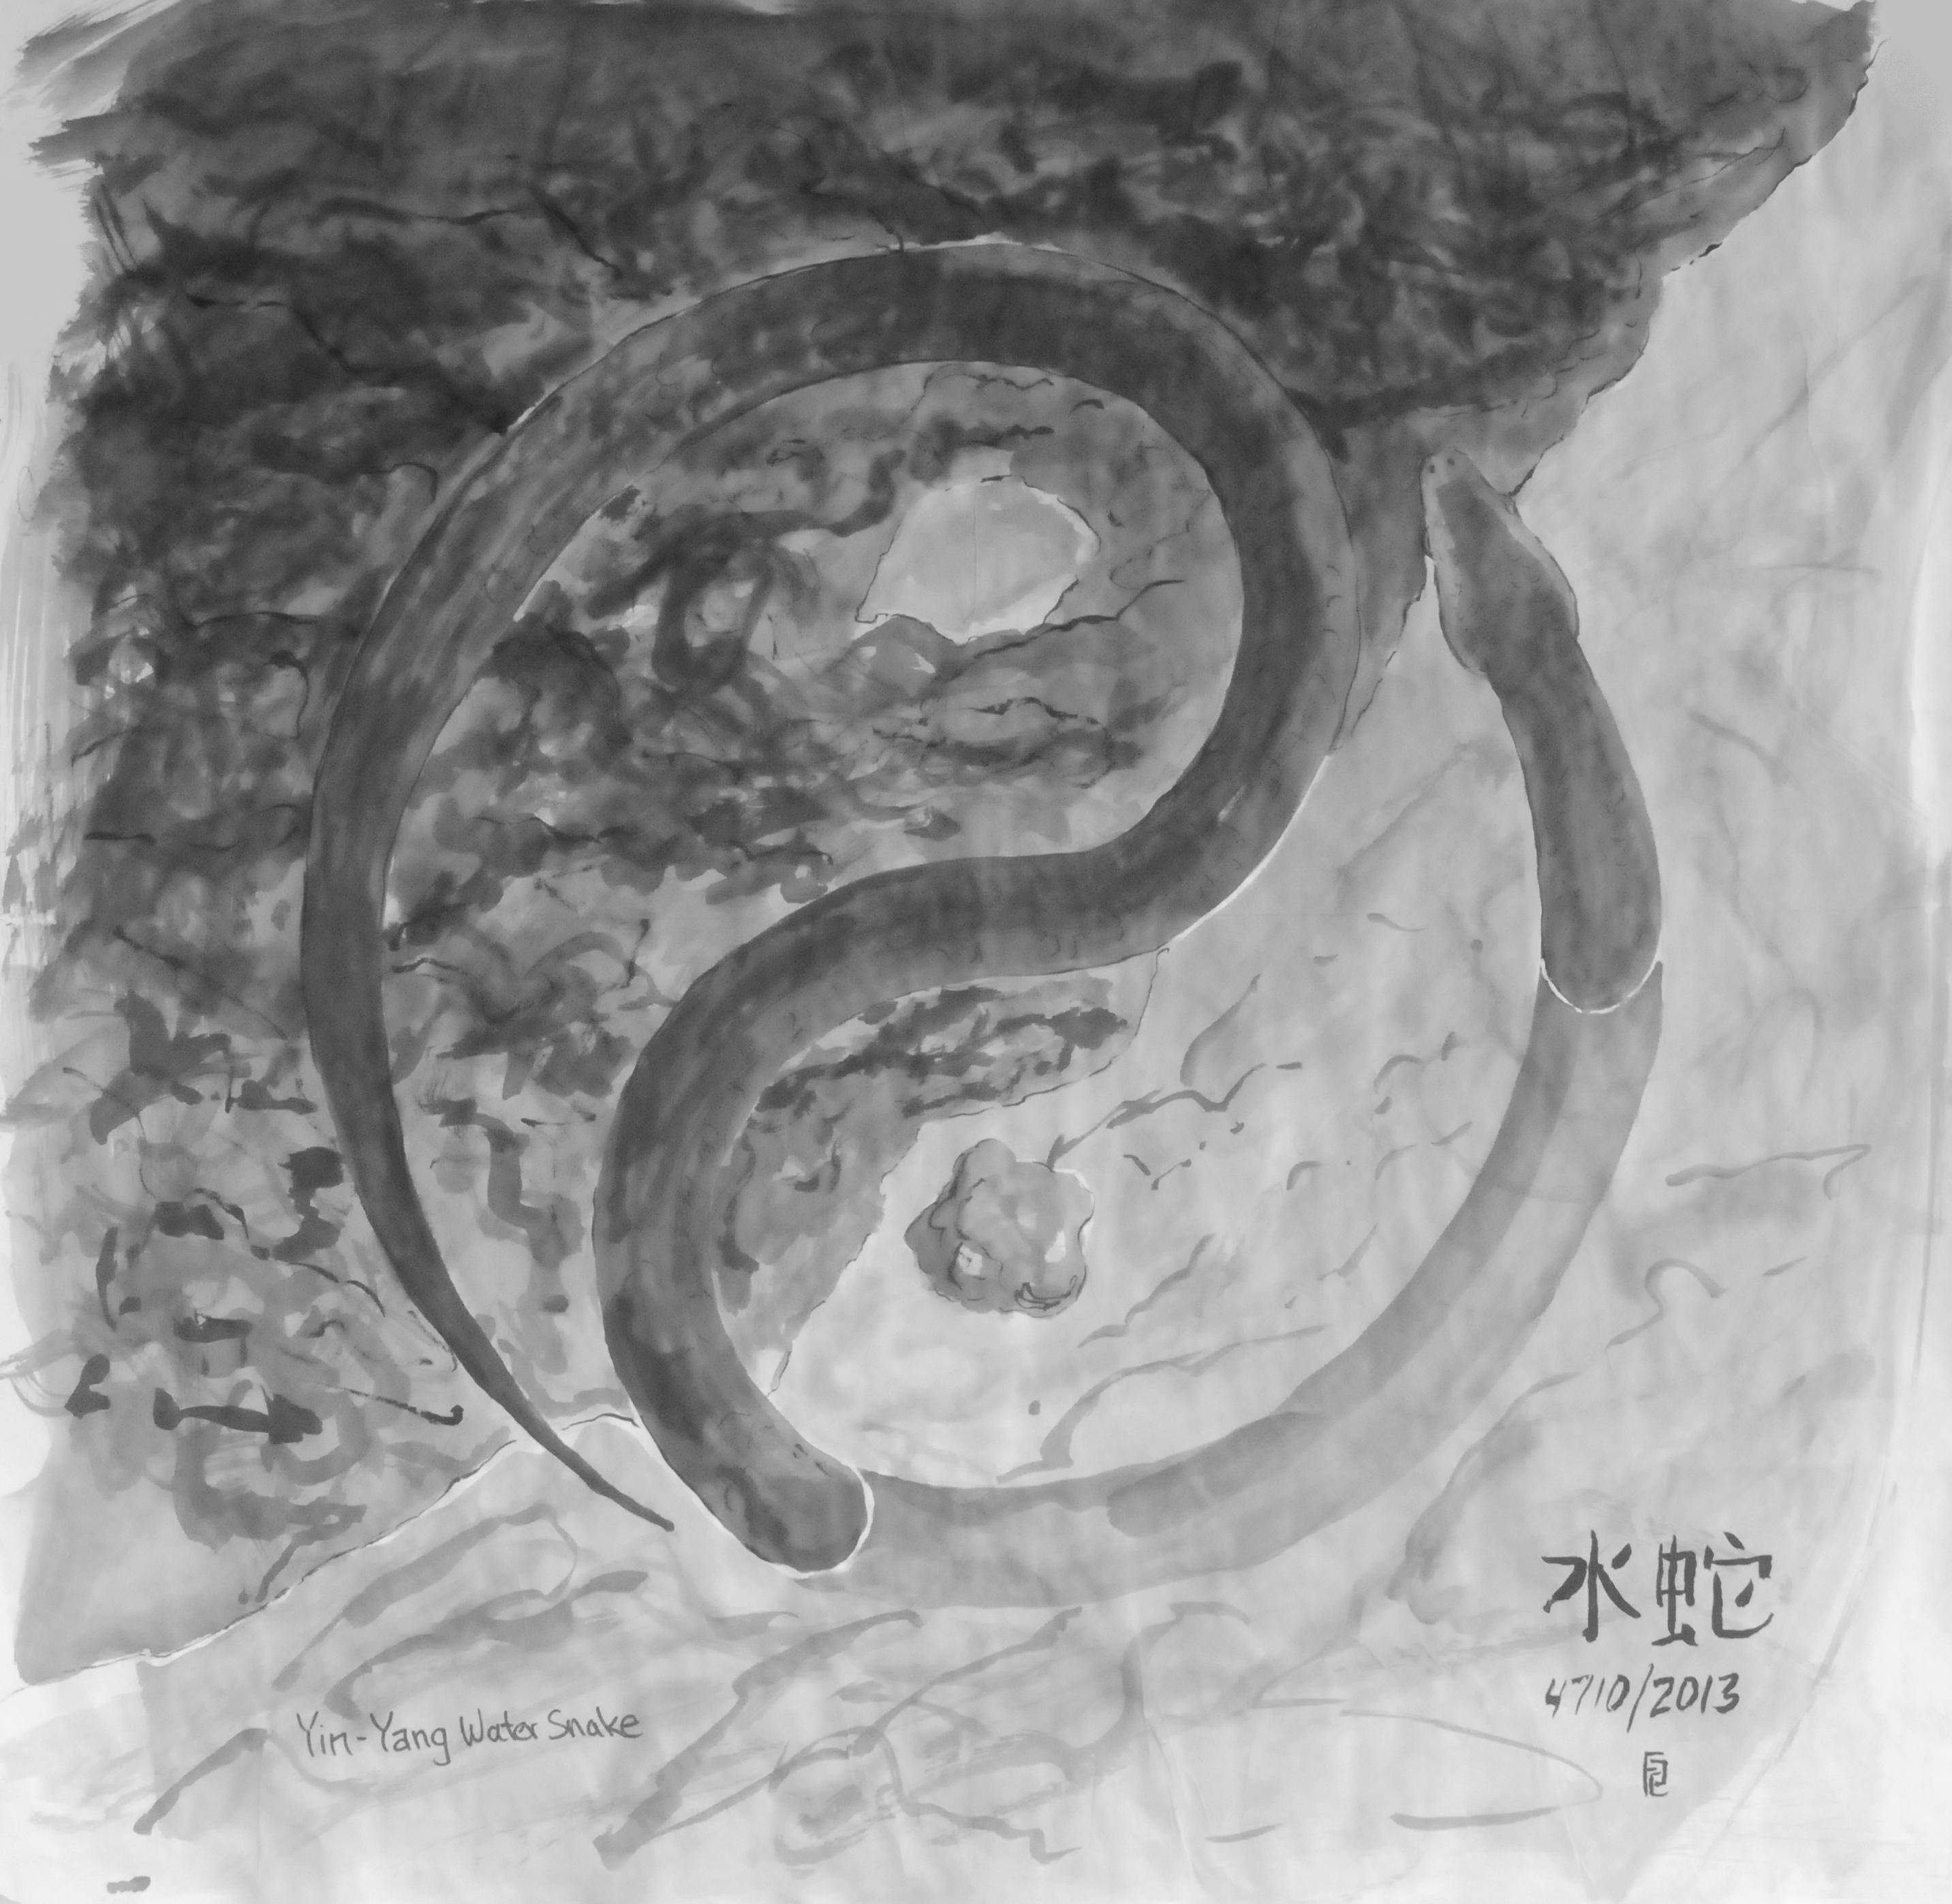 image of stylized yin yang symbol formed by a snake